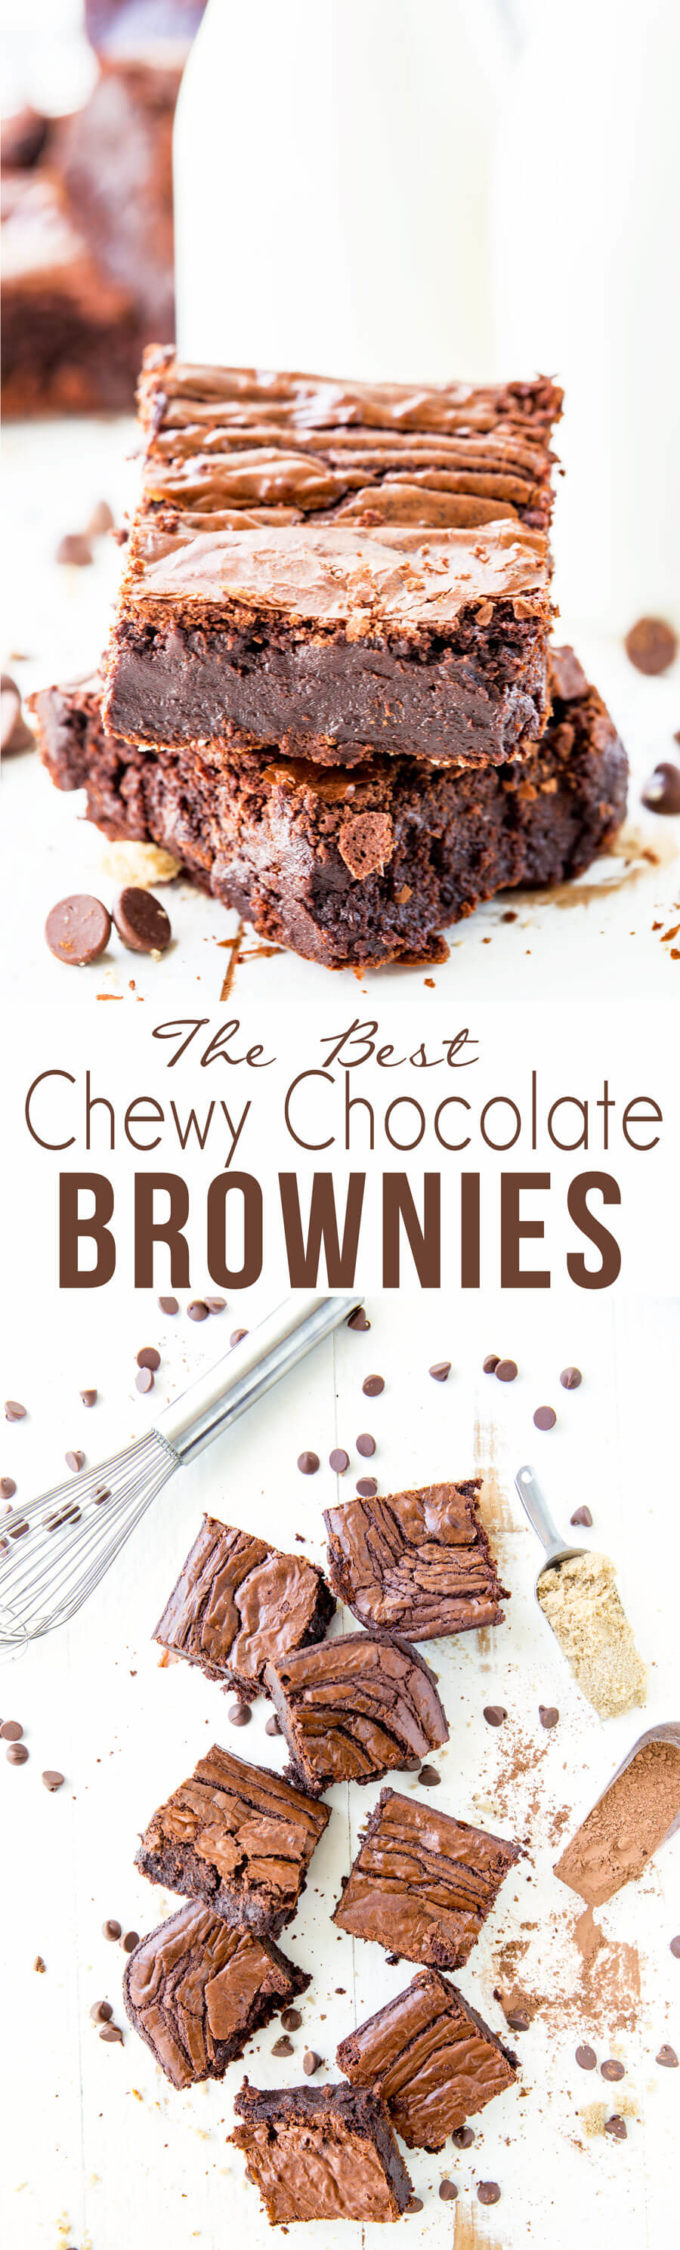 The best chewy chocolate brownies: These are the right kind of indulgence.